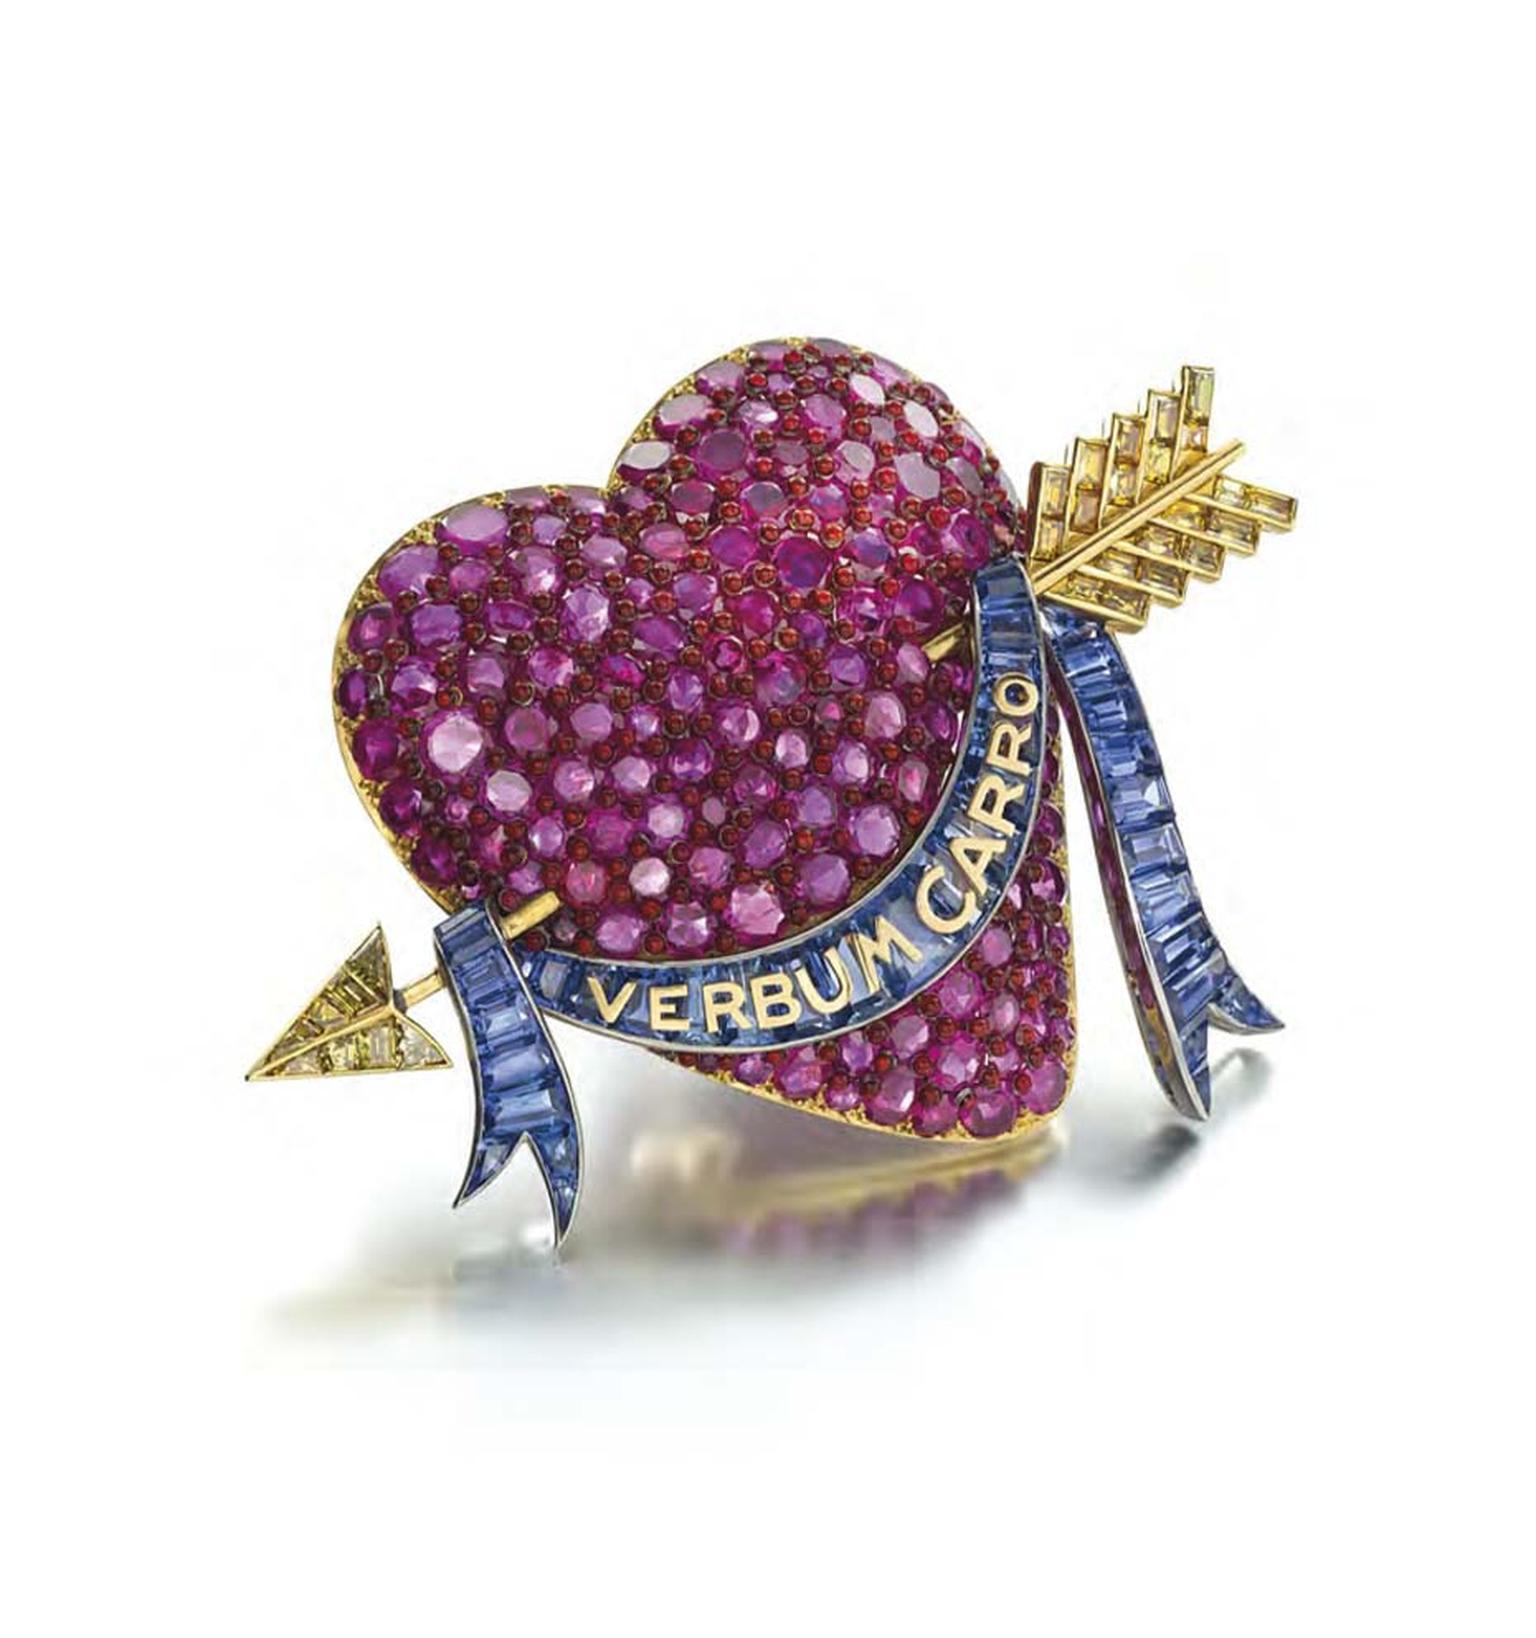 Paul Flato ruby, sapphire and colored diamond enamel brooch, designed and worn by Standard Oil heiress Millicent Rogers. Estimate: $350-500,000 at Christie's Magnificent Jewels auction in New York.